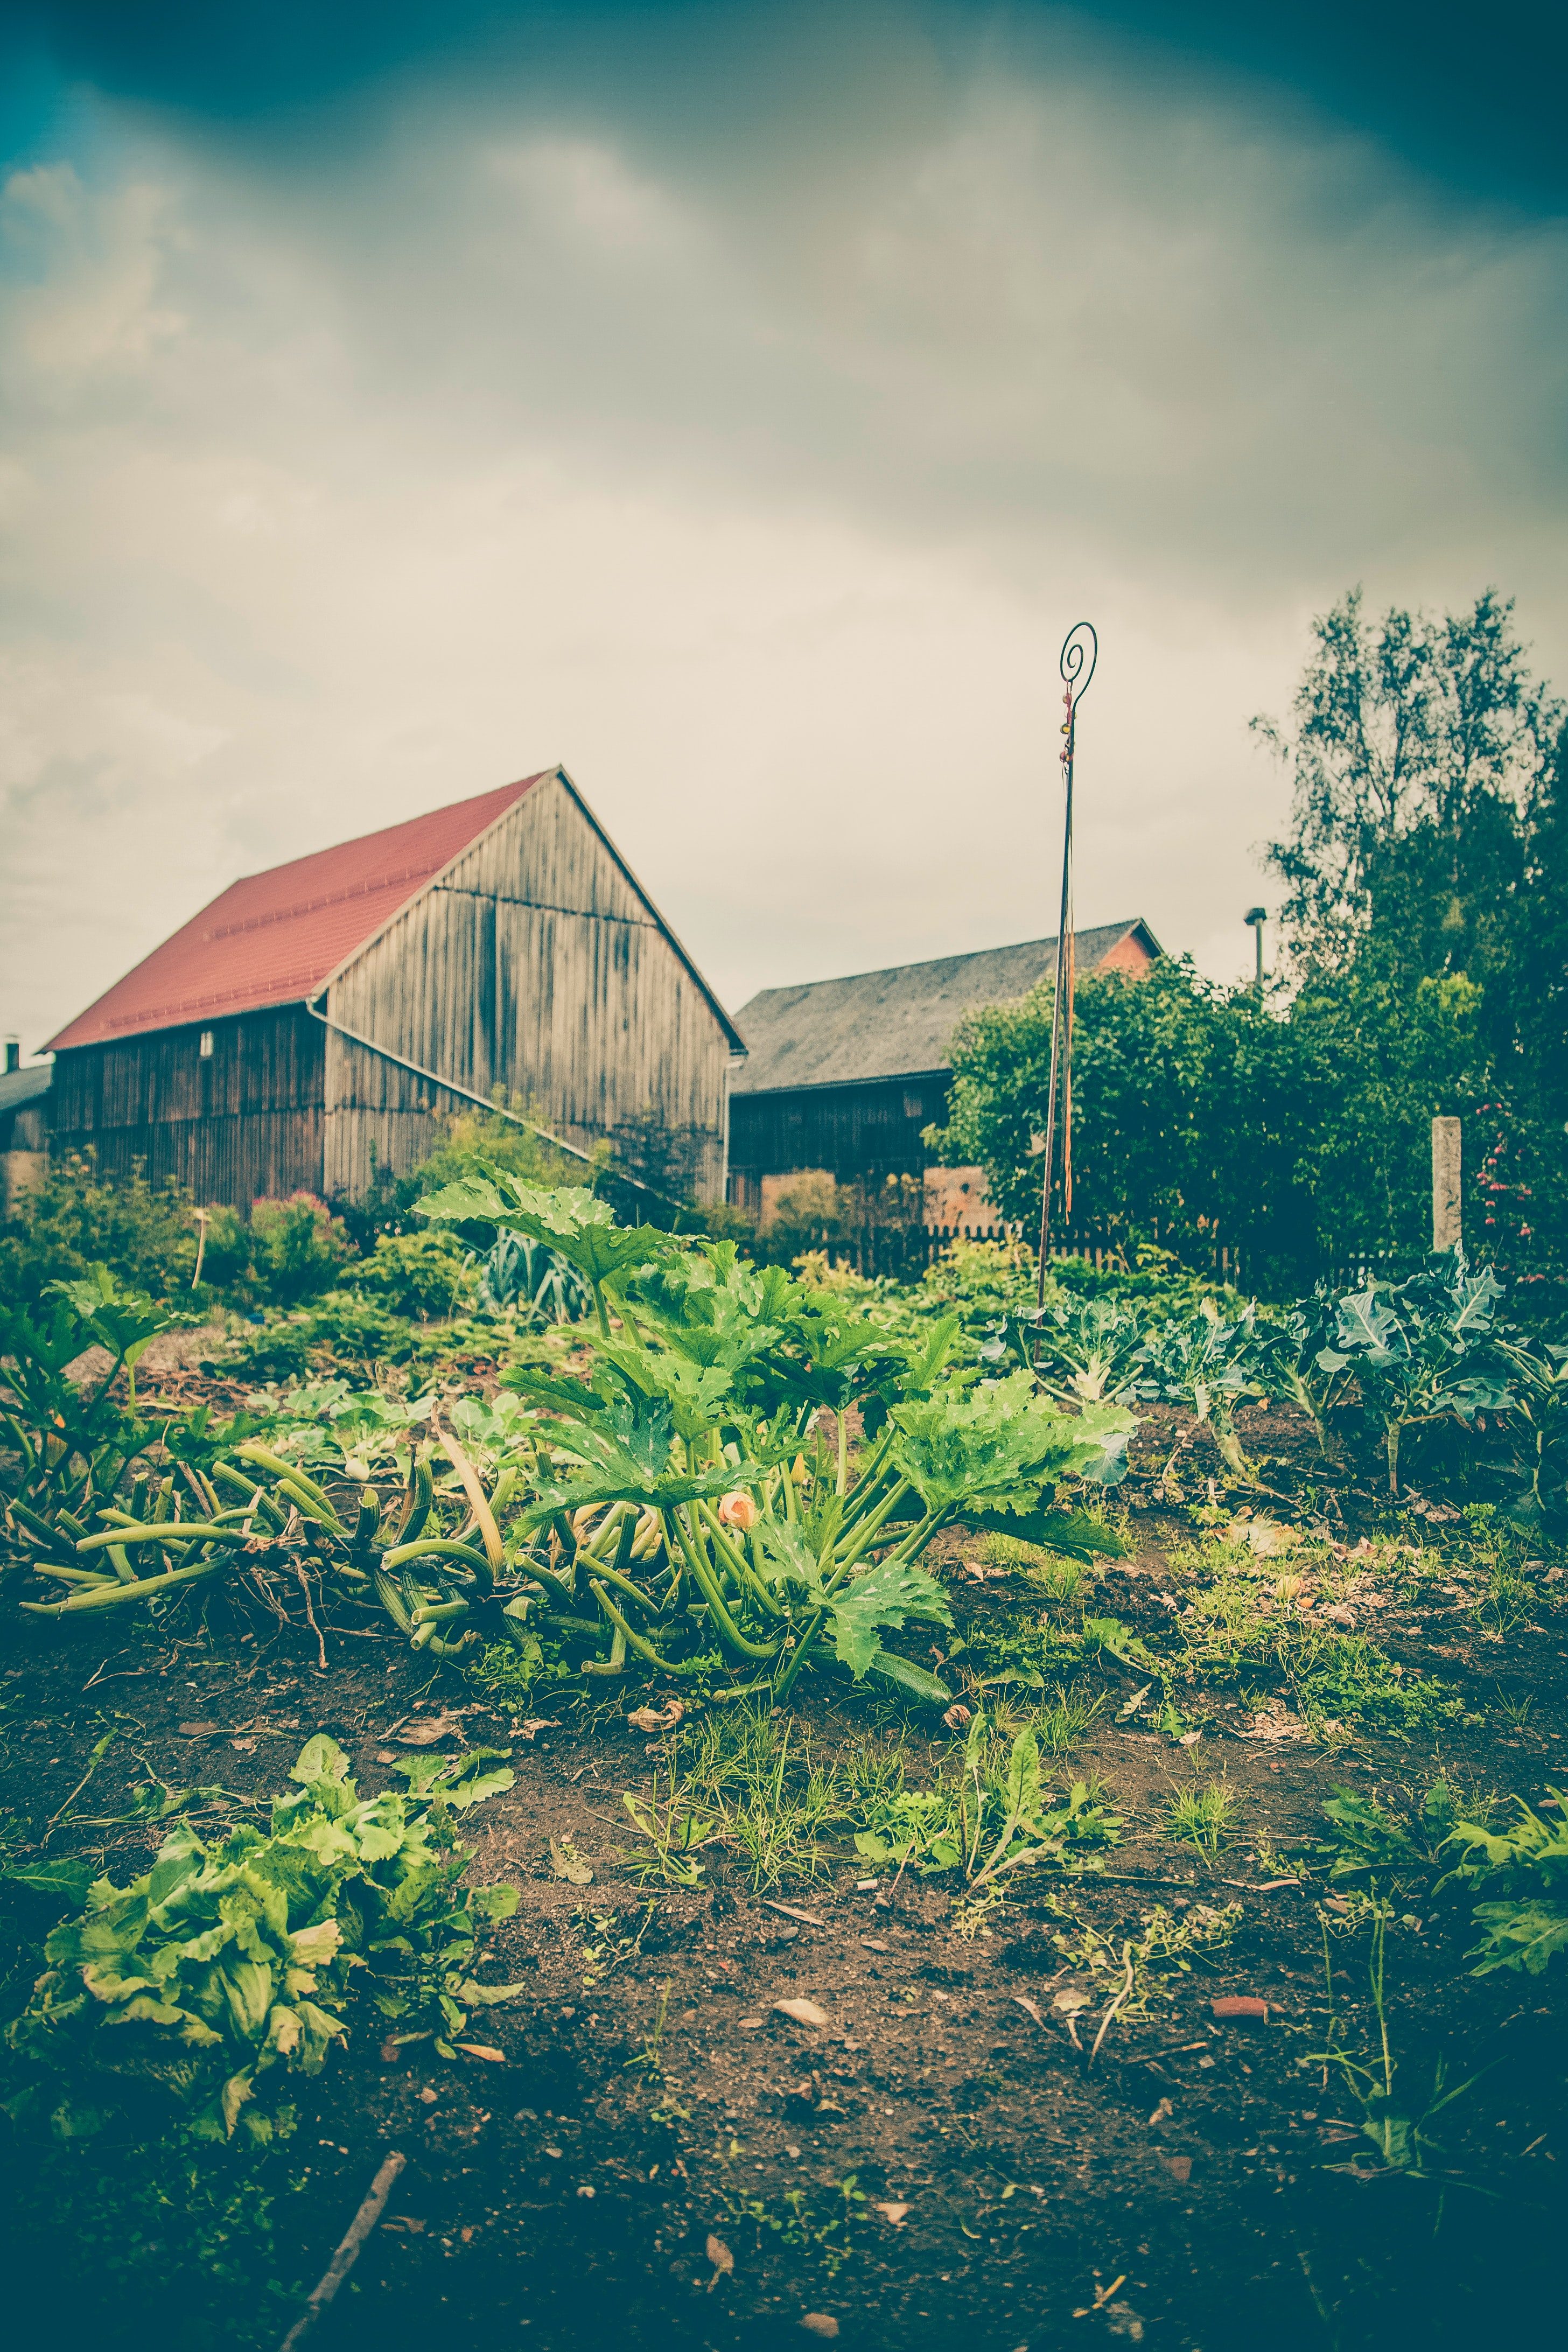 Green plants near white and red wooden house under dramatic clouds during daytime photo